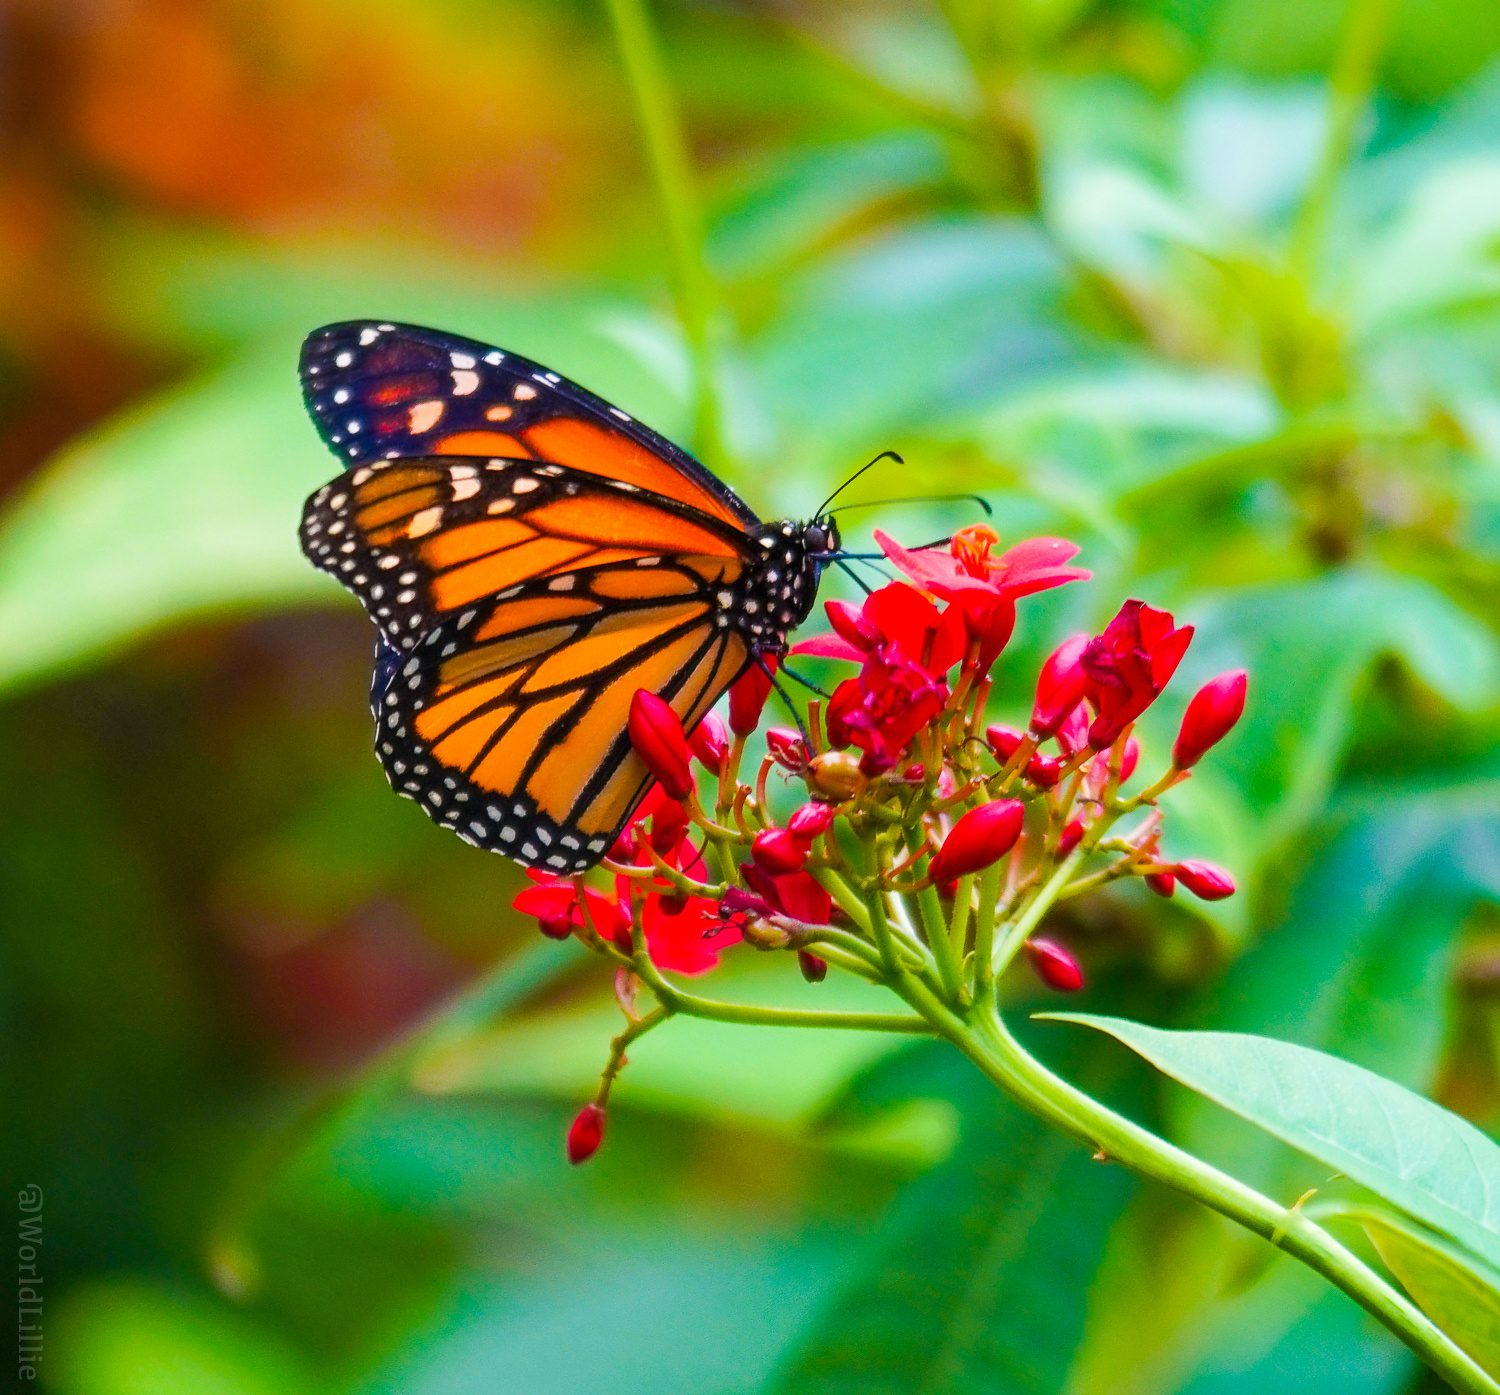 Step in to a world of butterflies and flowers.